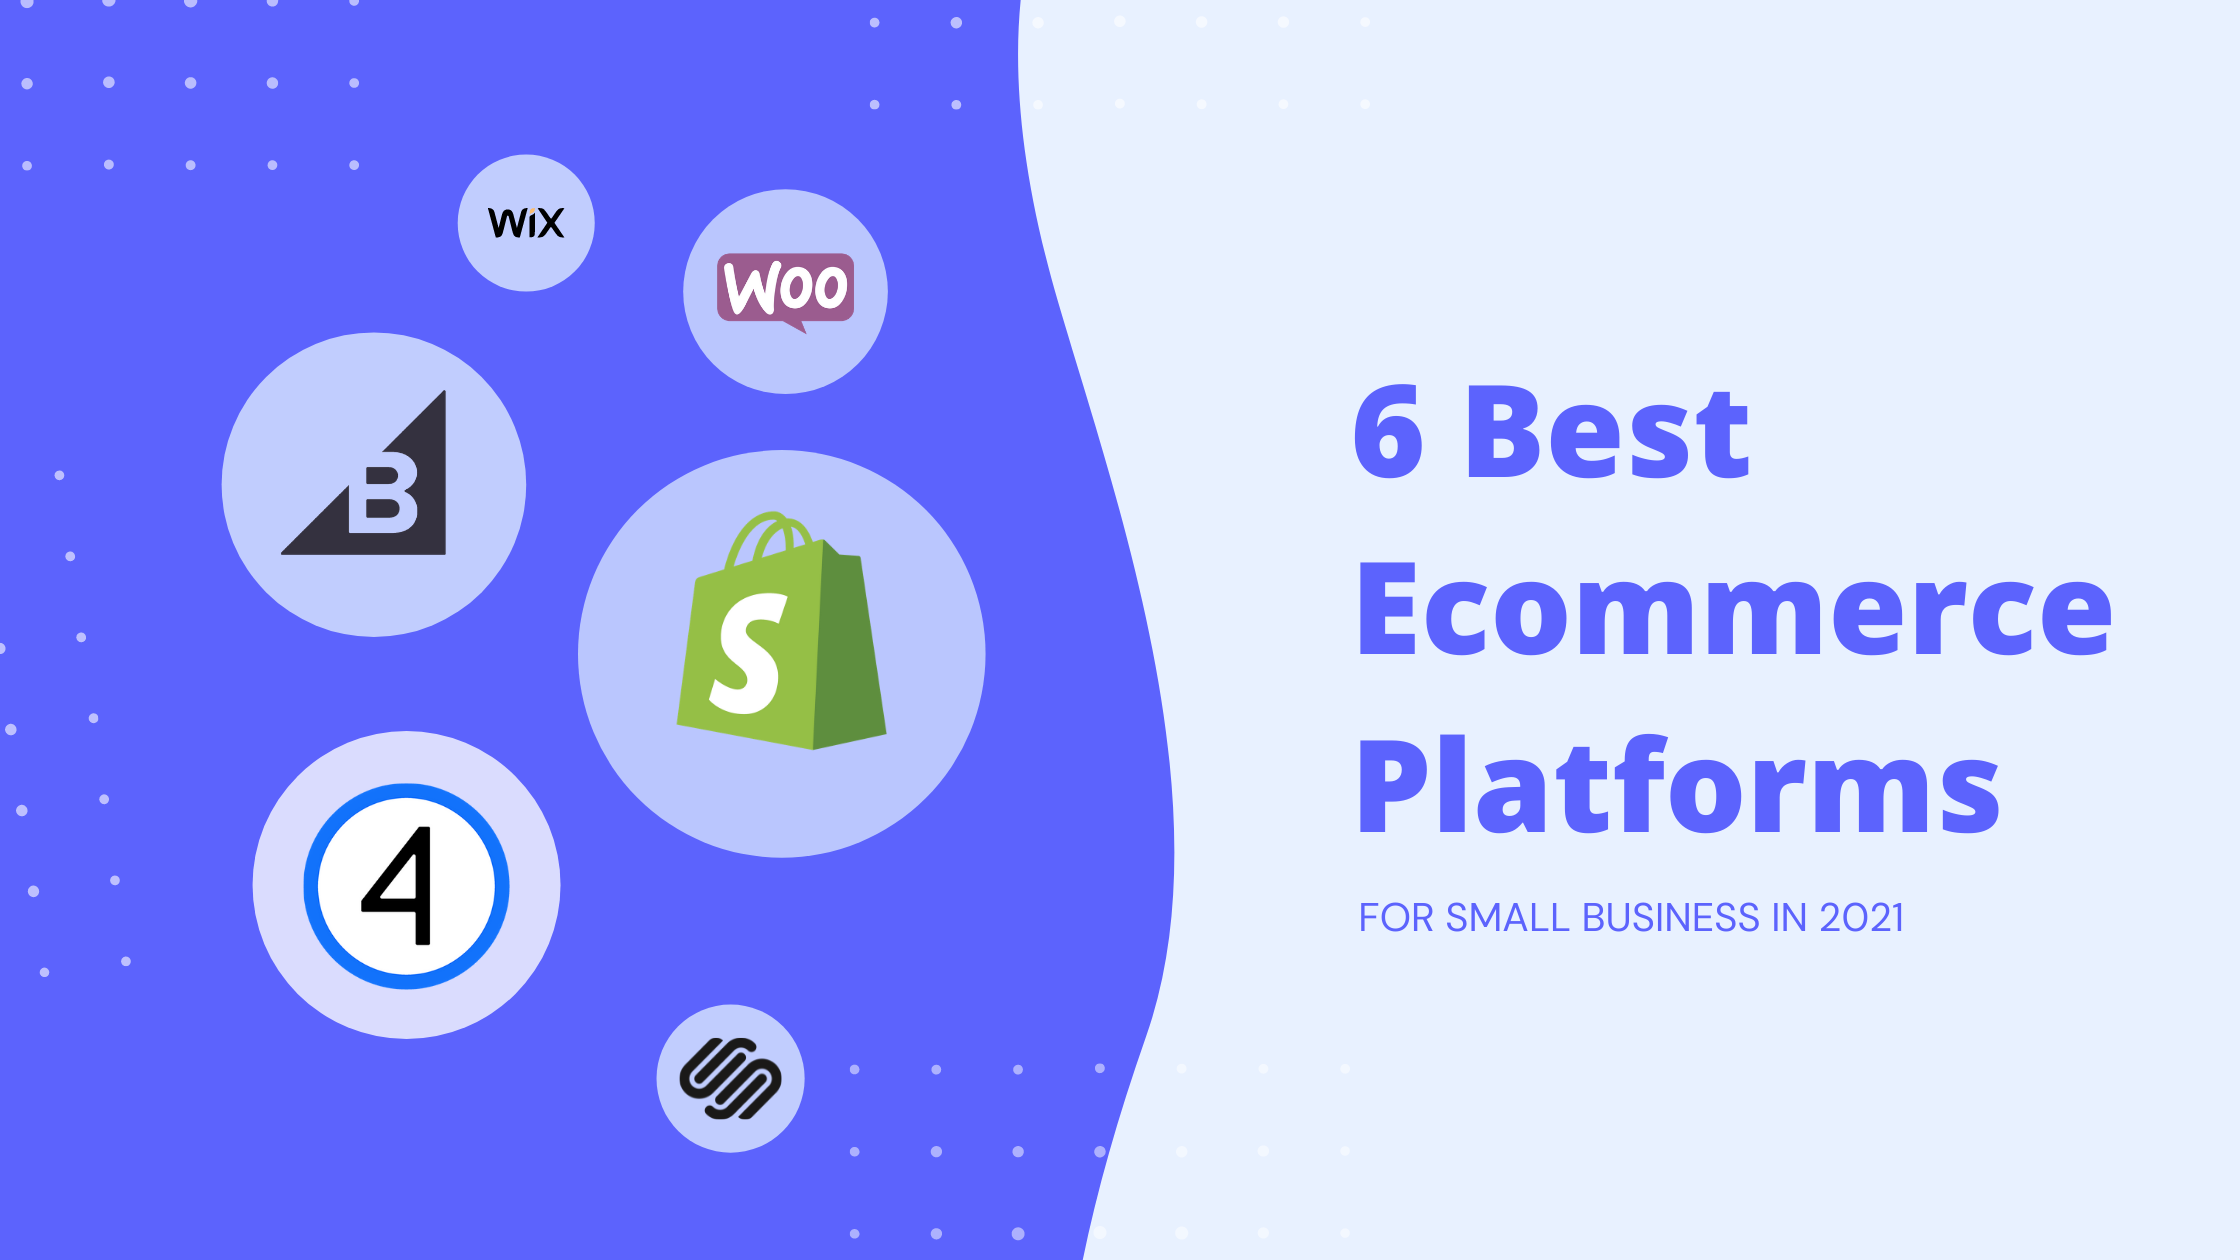 6 Best Ecommerce Platforms for Small Business in 2021